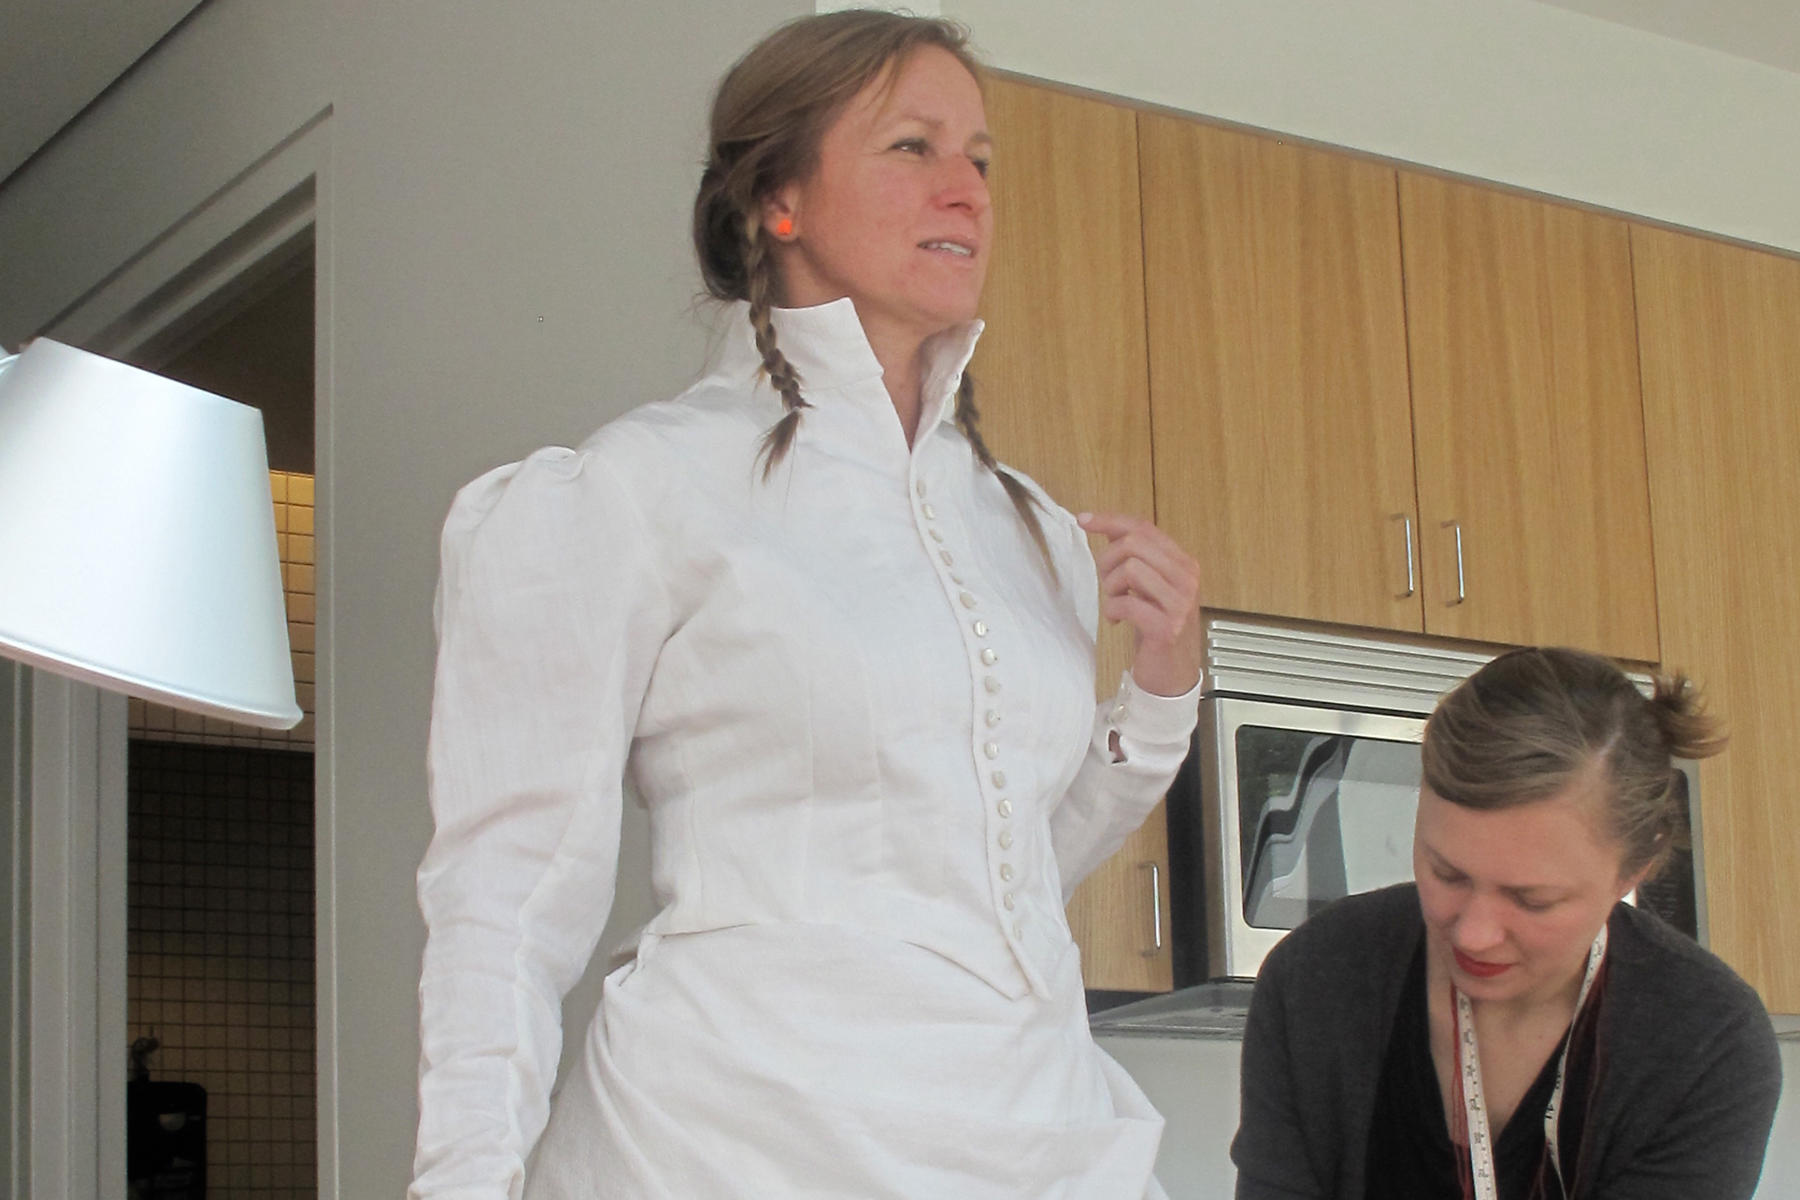 A dress fitting: Charmaine Wheatley prepares for an upcoming performance at the Mills Gallery, Boston, 2012.